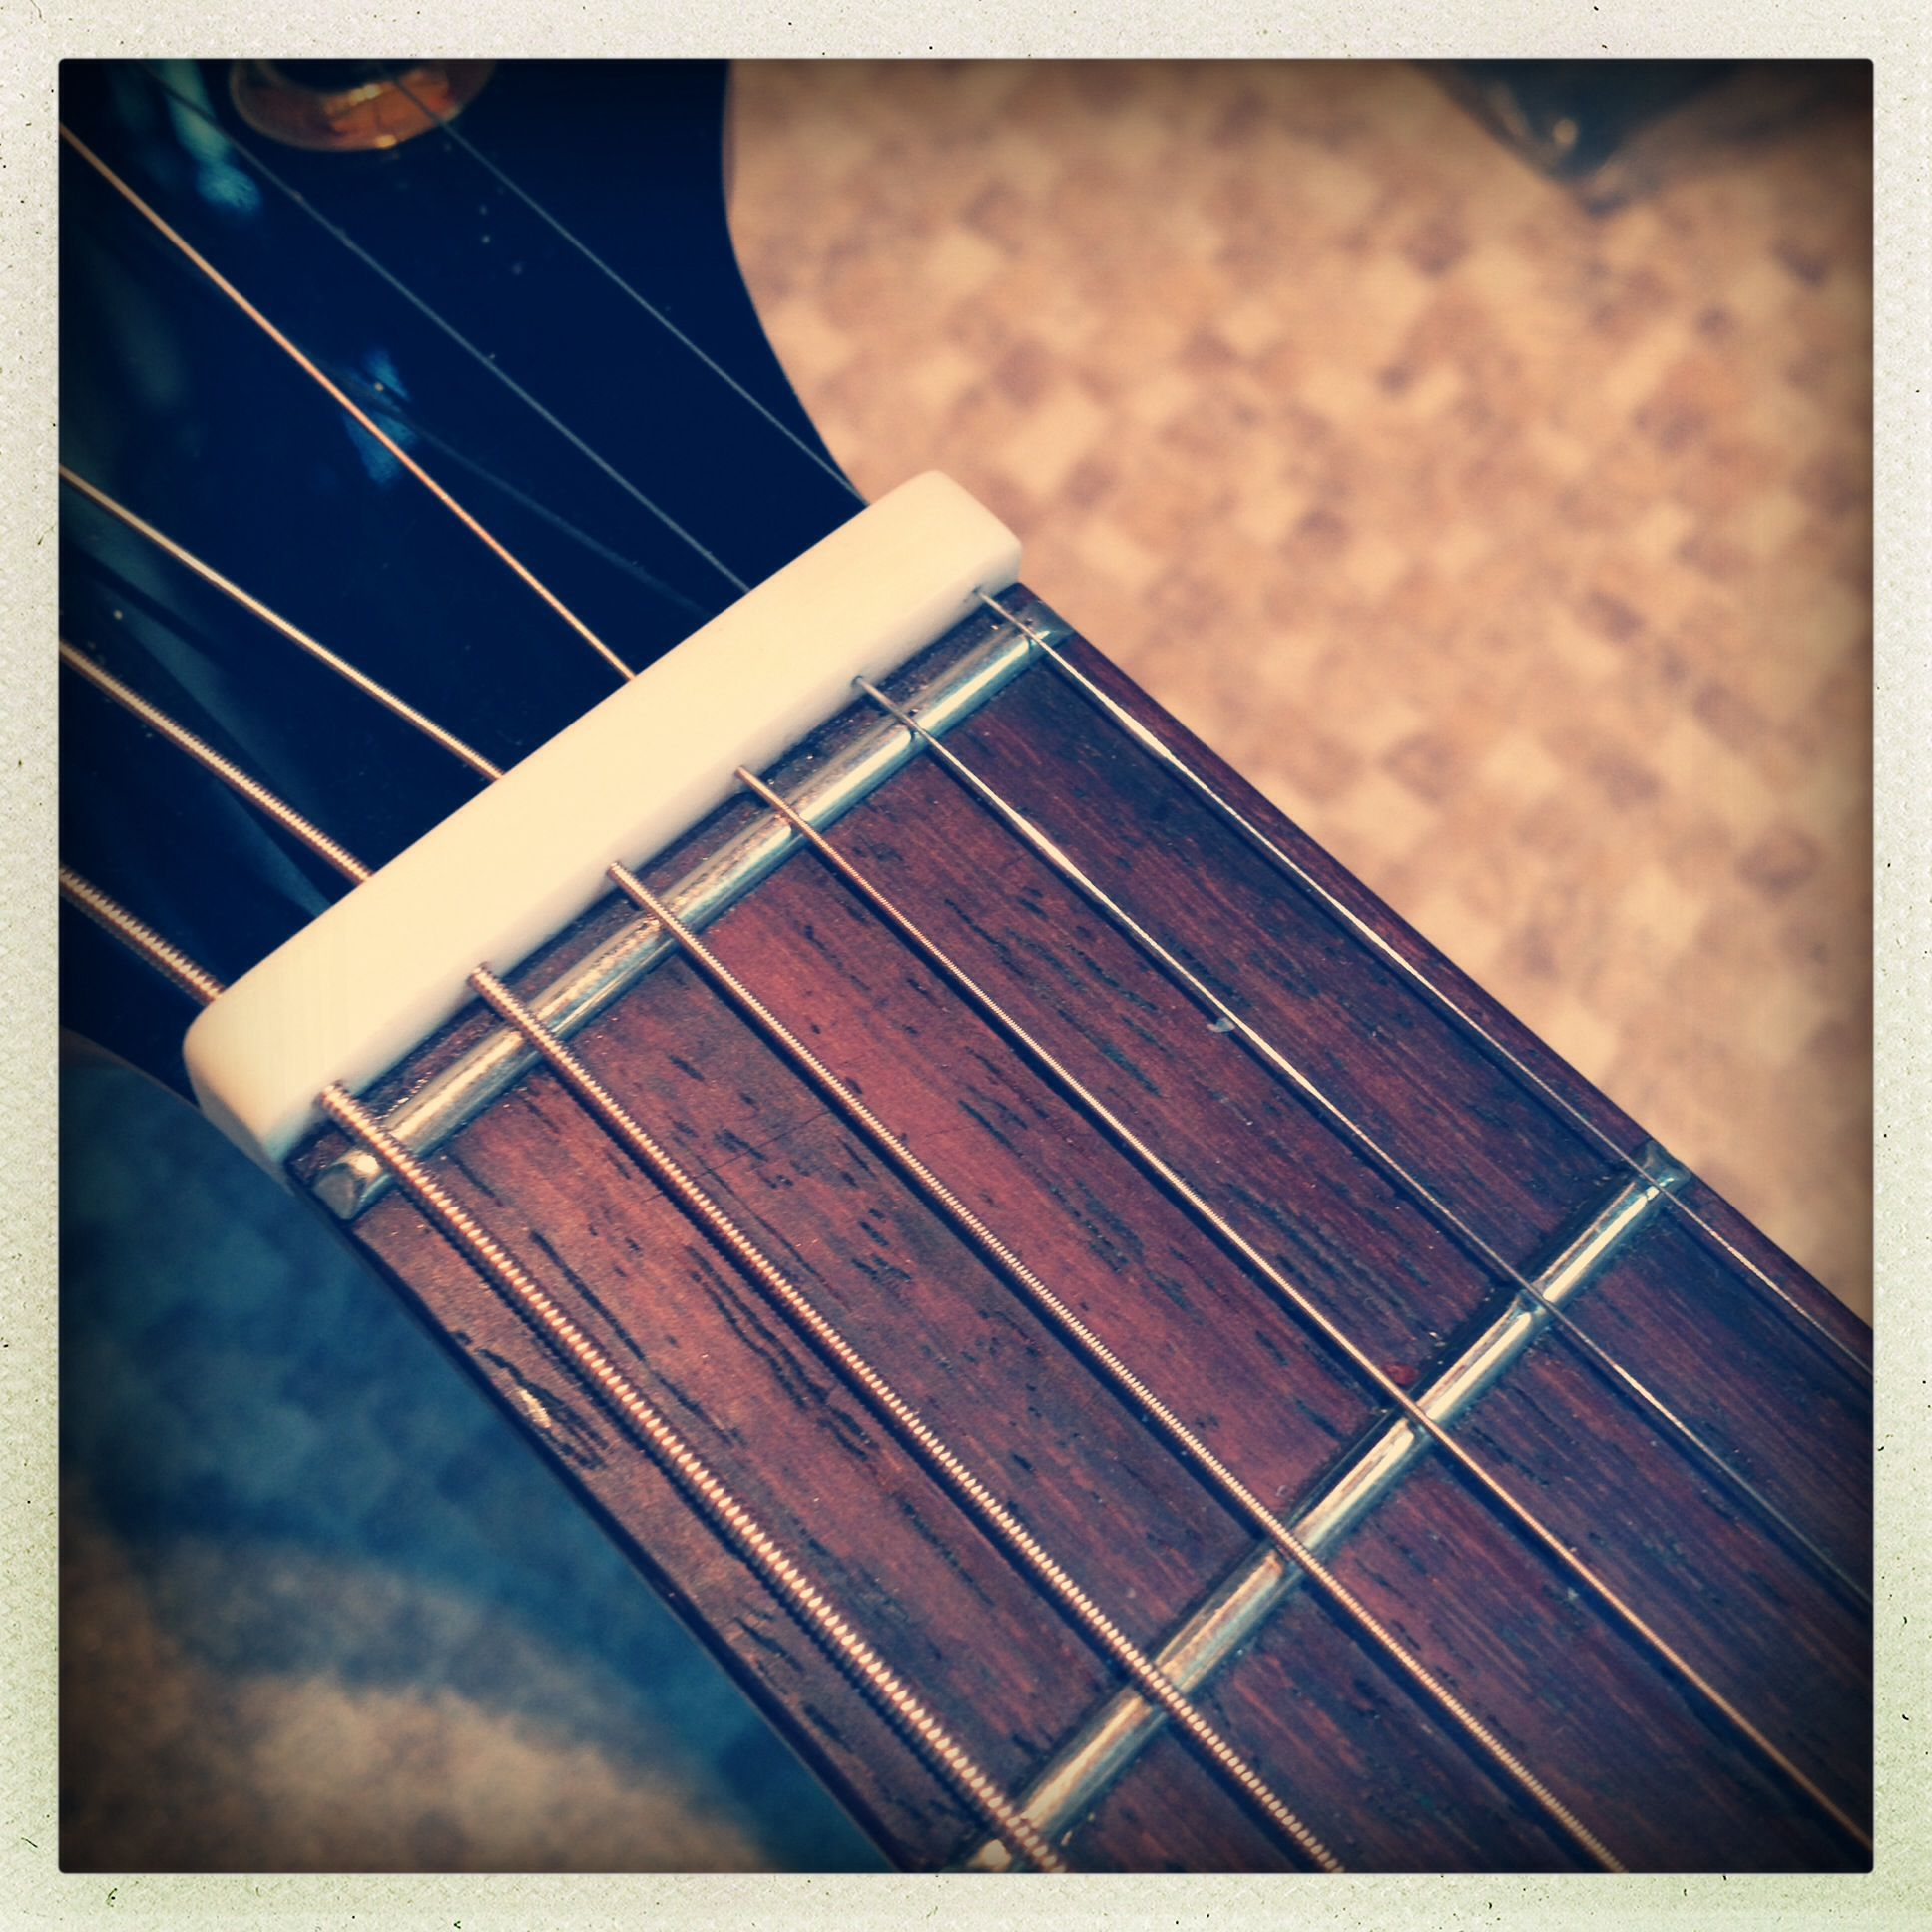 Zero fret on guitar (note: the nut here is a 'captive' nut and holds the strings in holes rather than slots—this is relatively unusual and for a particular application)